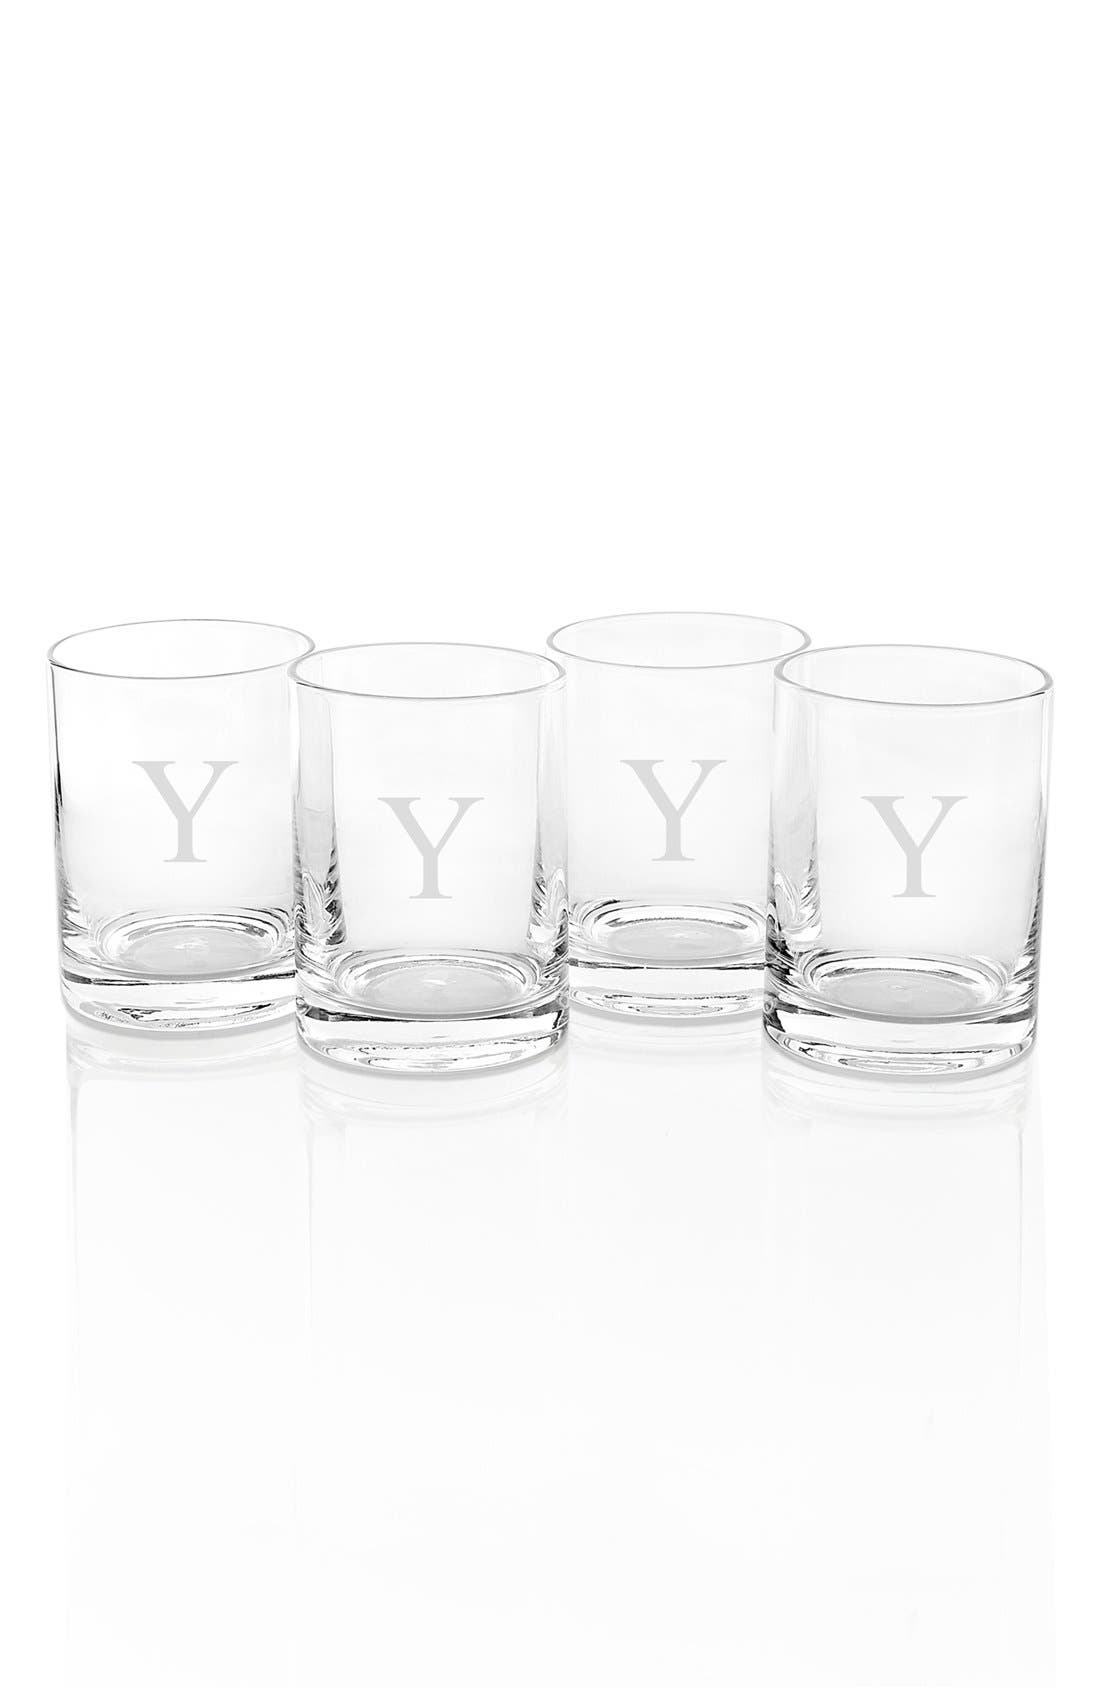 Main Image - Cathy's Concepts Monogram Drinking Glasses (Set of 4)